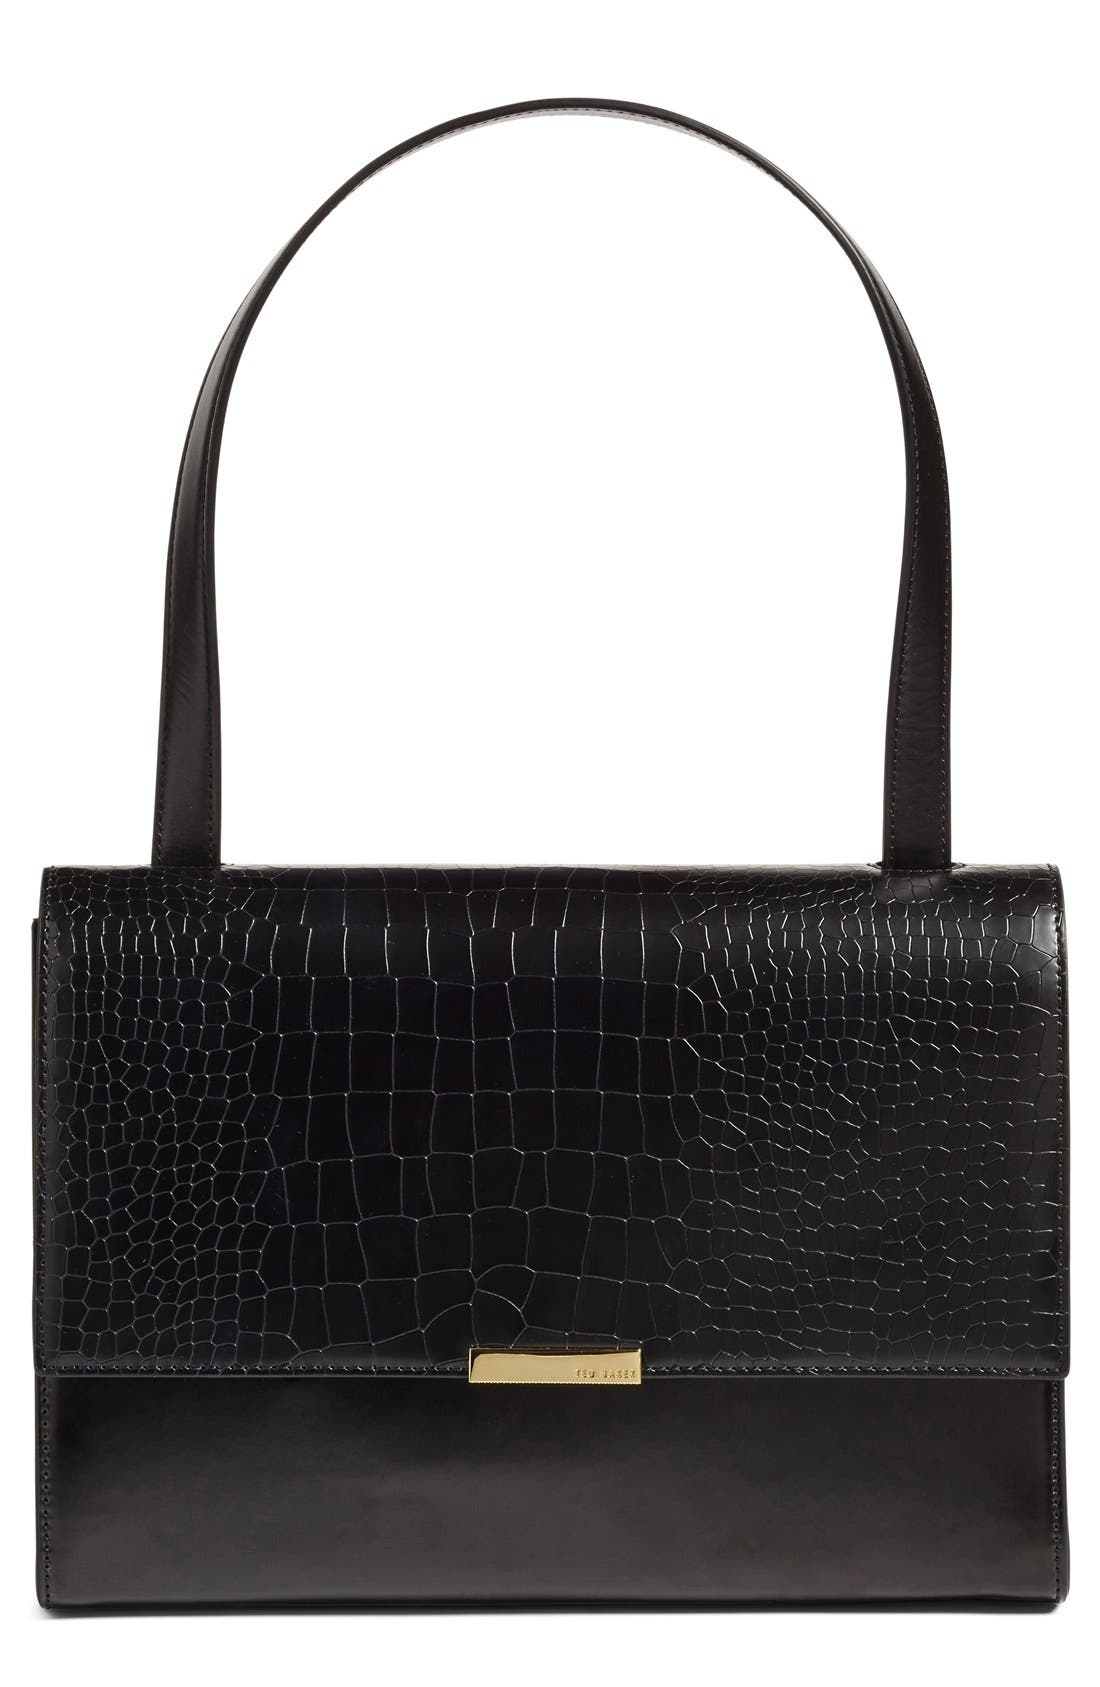 Alternate Image 1 Selected - Ted Baker London 'Lowri' Croc Embossed Leather Shoulder Bag